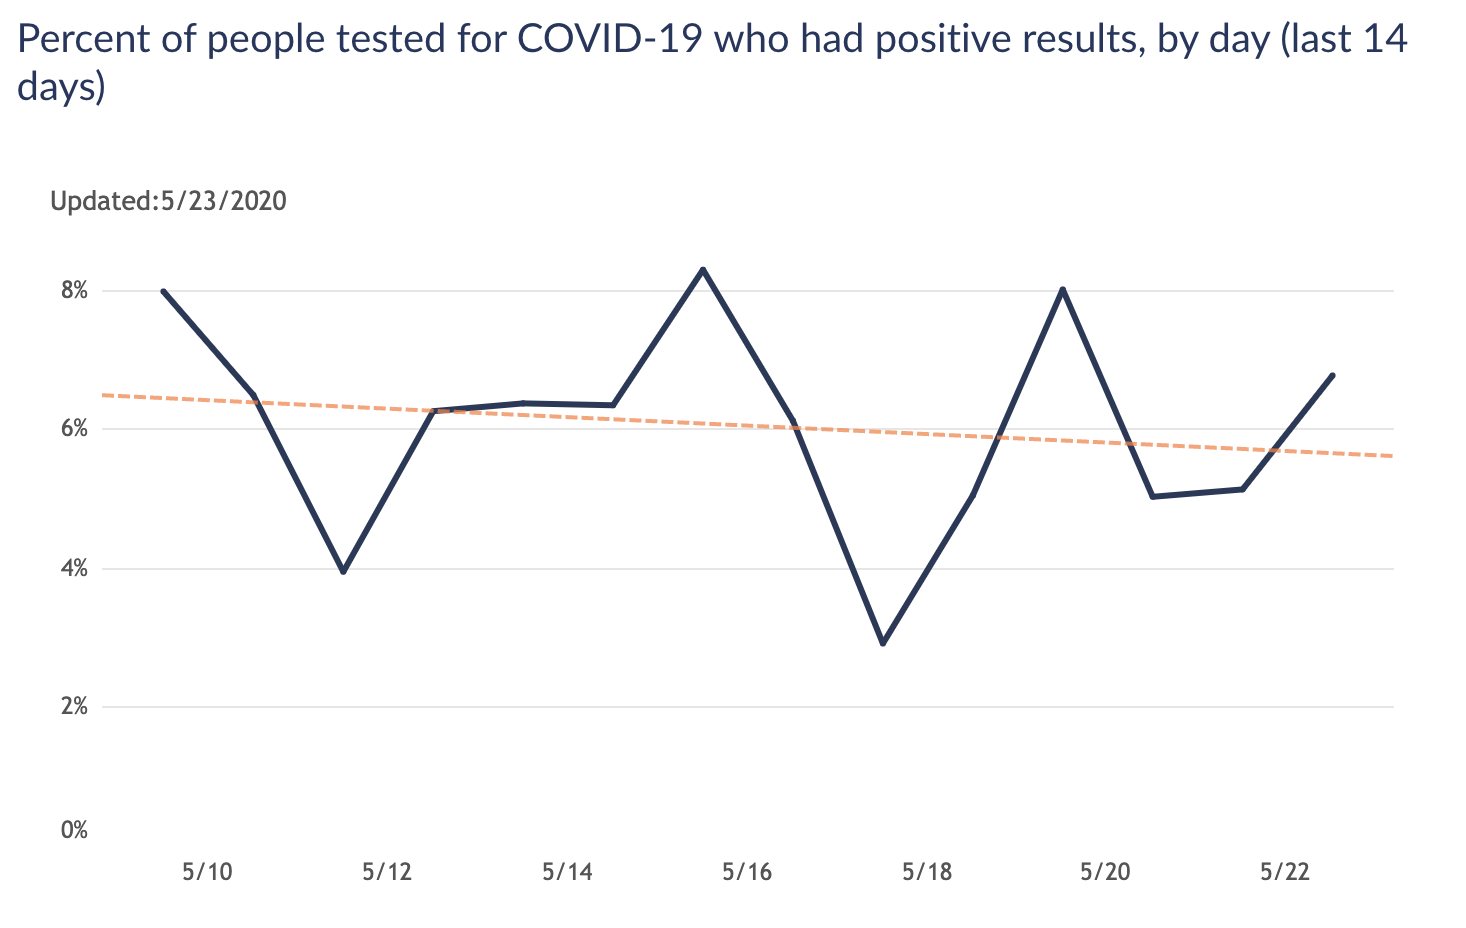 A graph that has the percent of people of tested for COVID-19